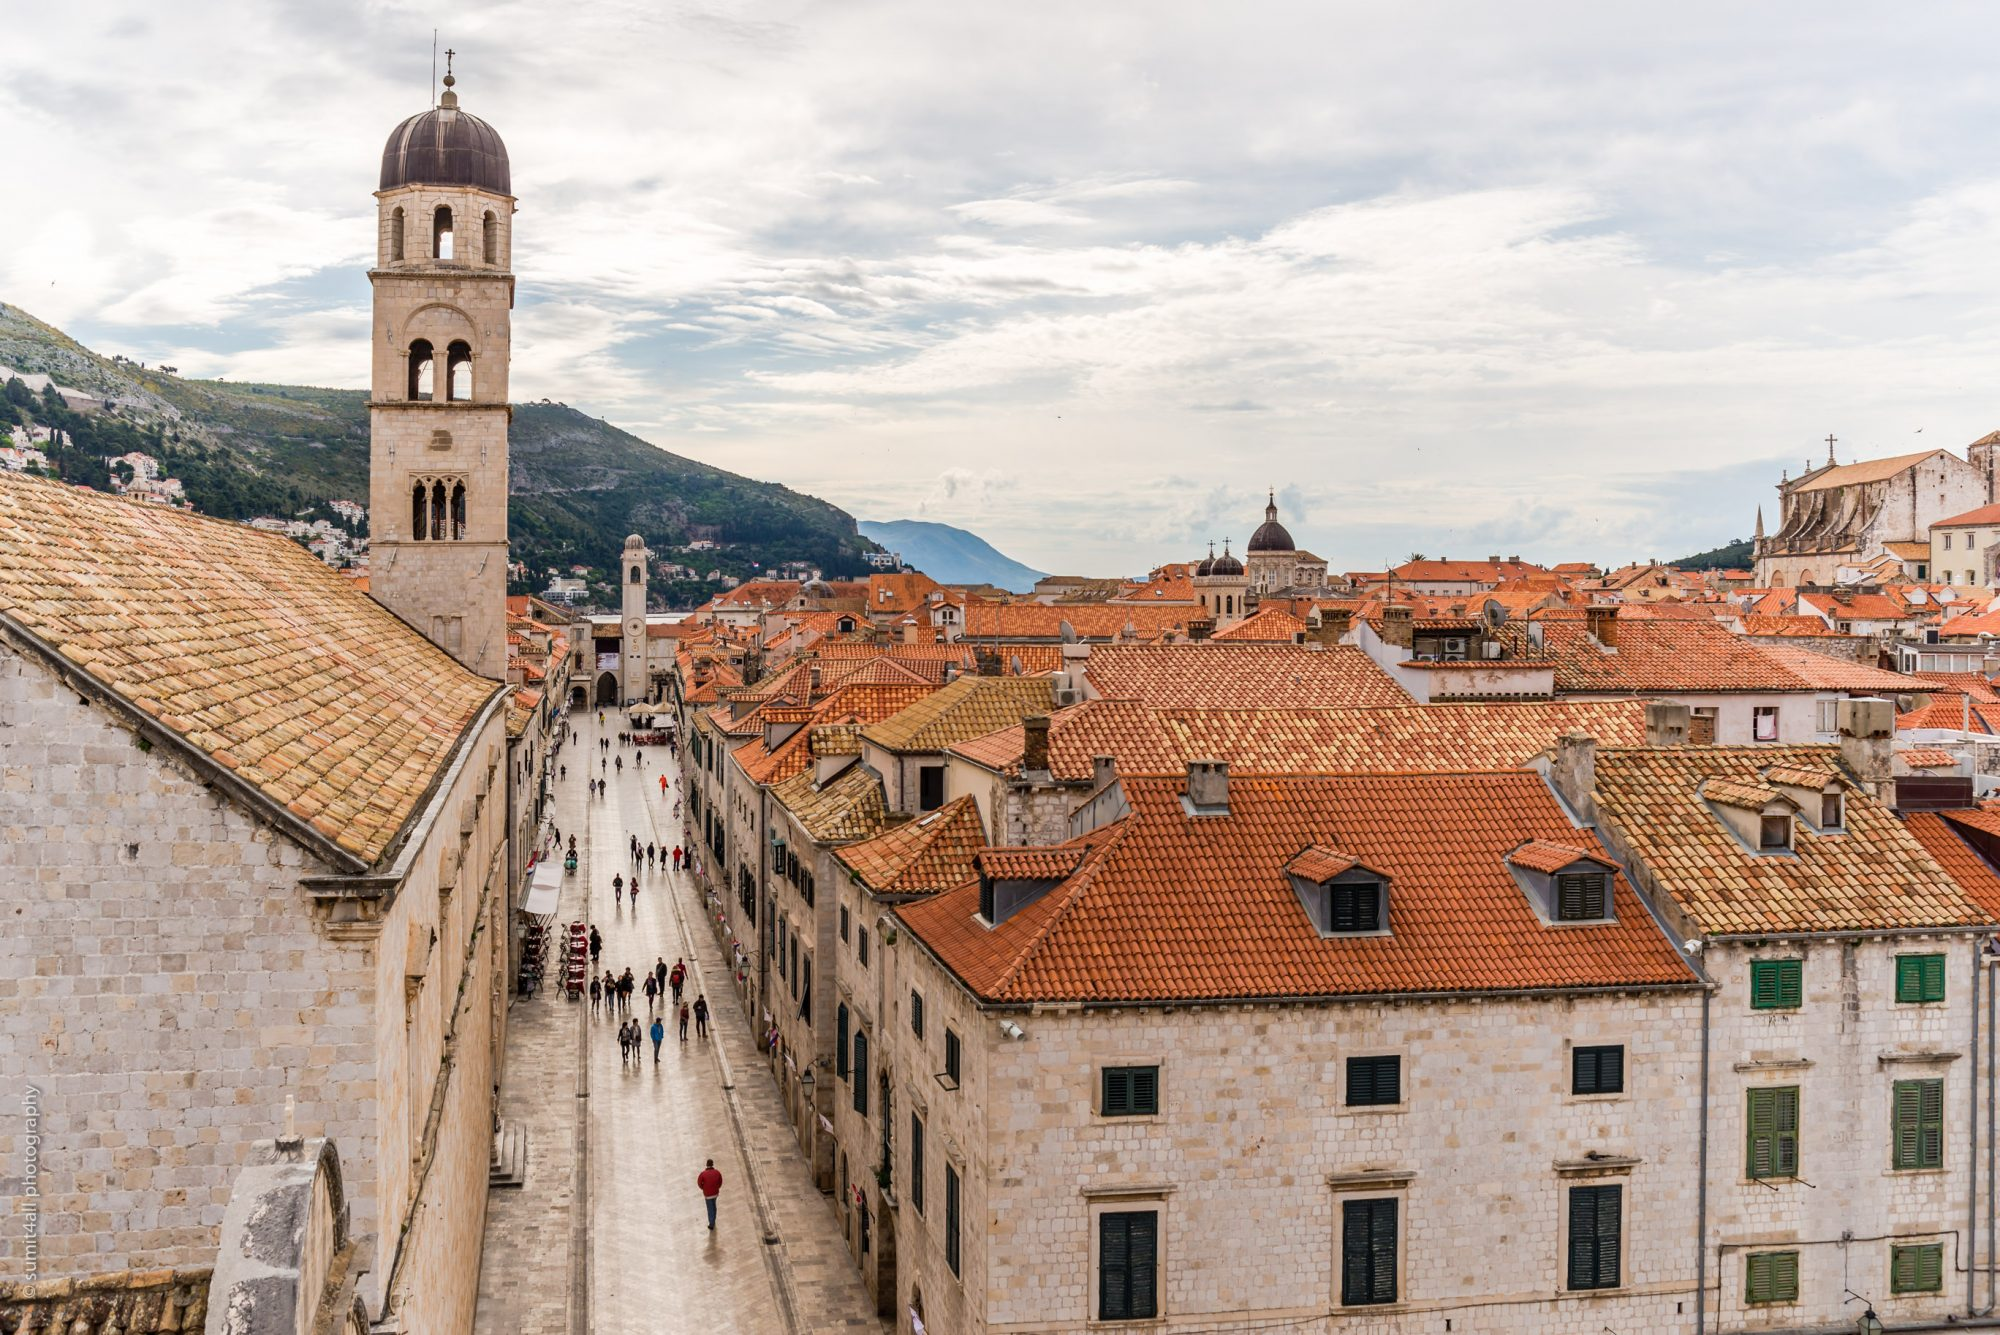 Dubrovnik Old City from the City Walls